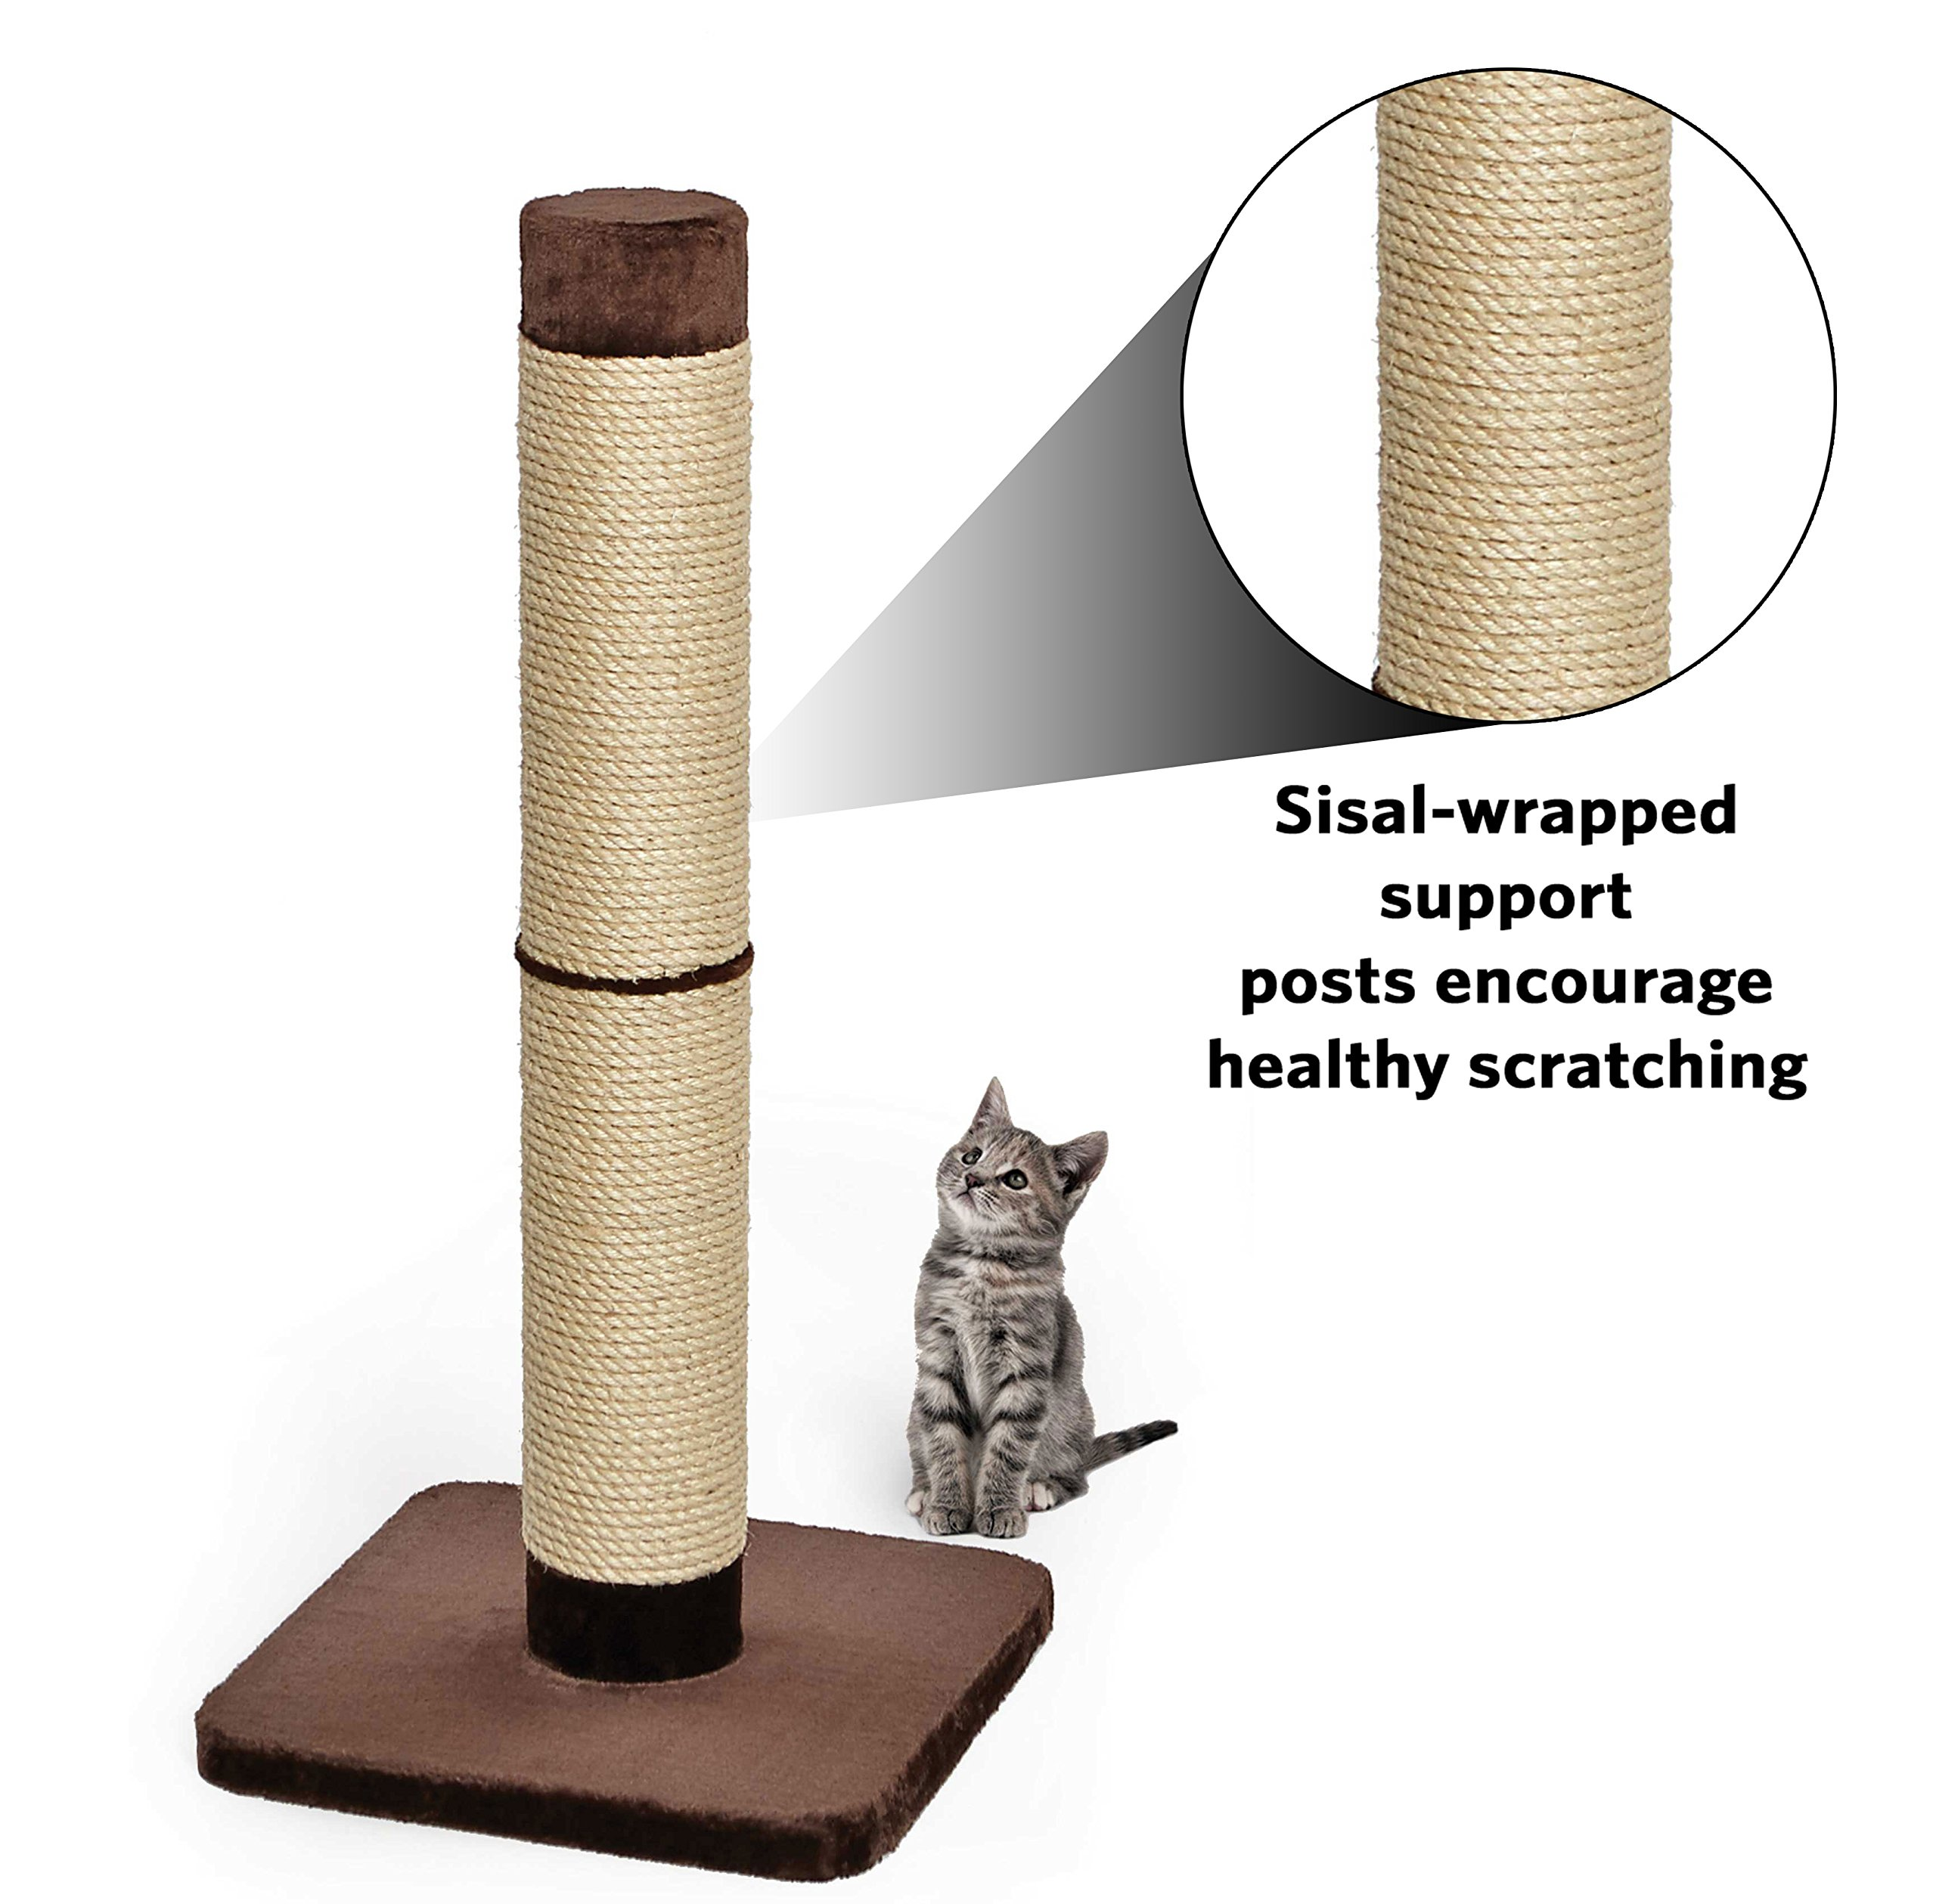 Cat Scratching Post | ''Forte'' Huge Cat Scratching Post w/ Extra-Durable Sisal Wrap, Brown & Tan, Giant XXL Cat Post